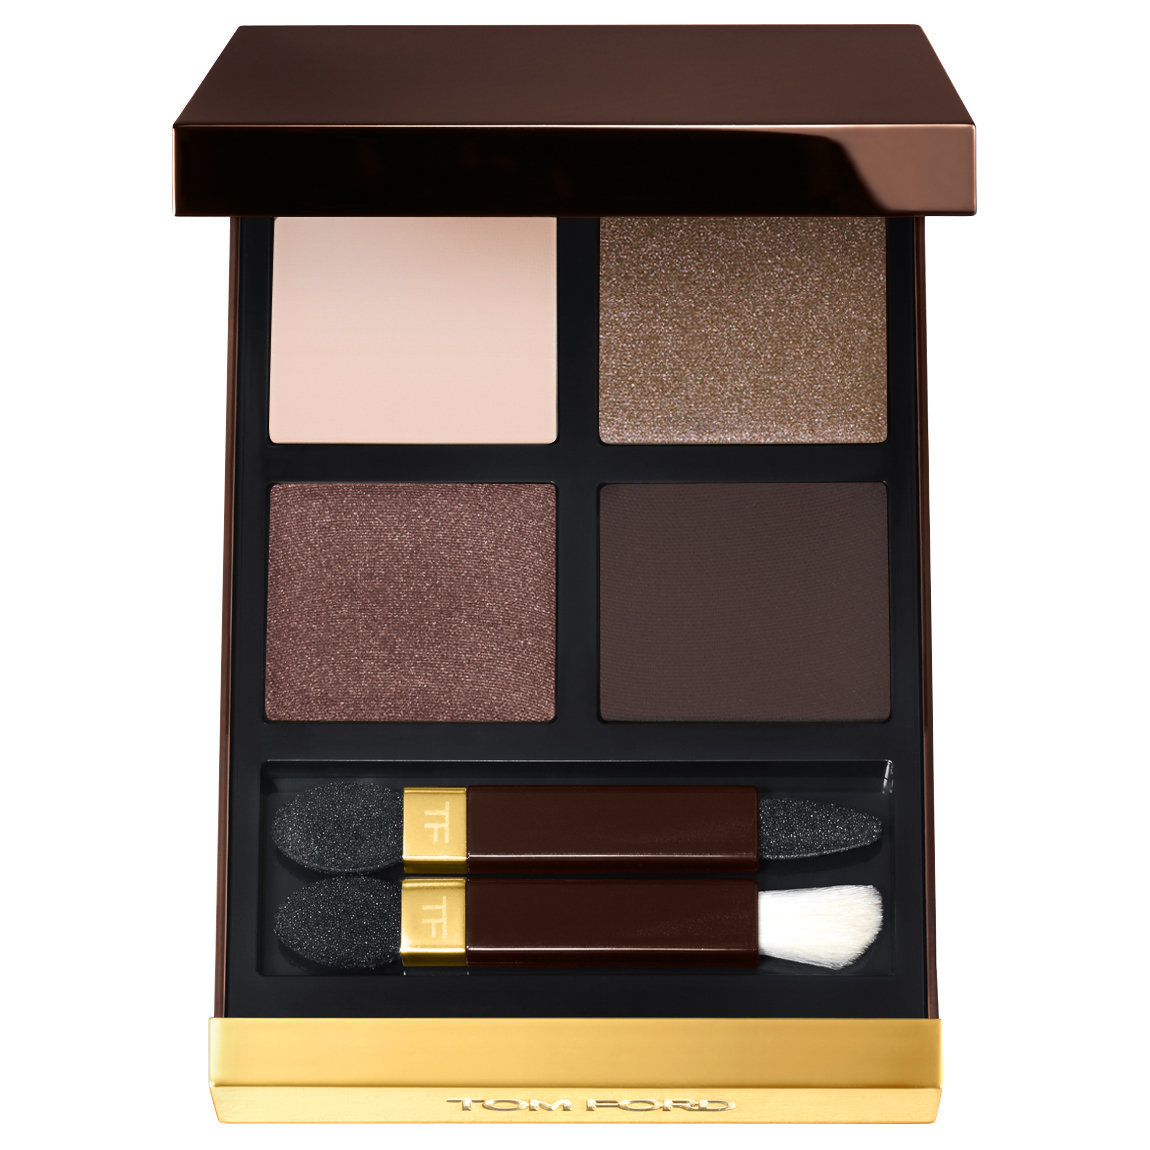 TOM FORD Eye Color Quad Noir Fume alternative view 1 - product swatch.